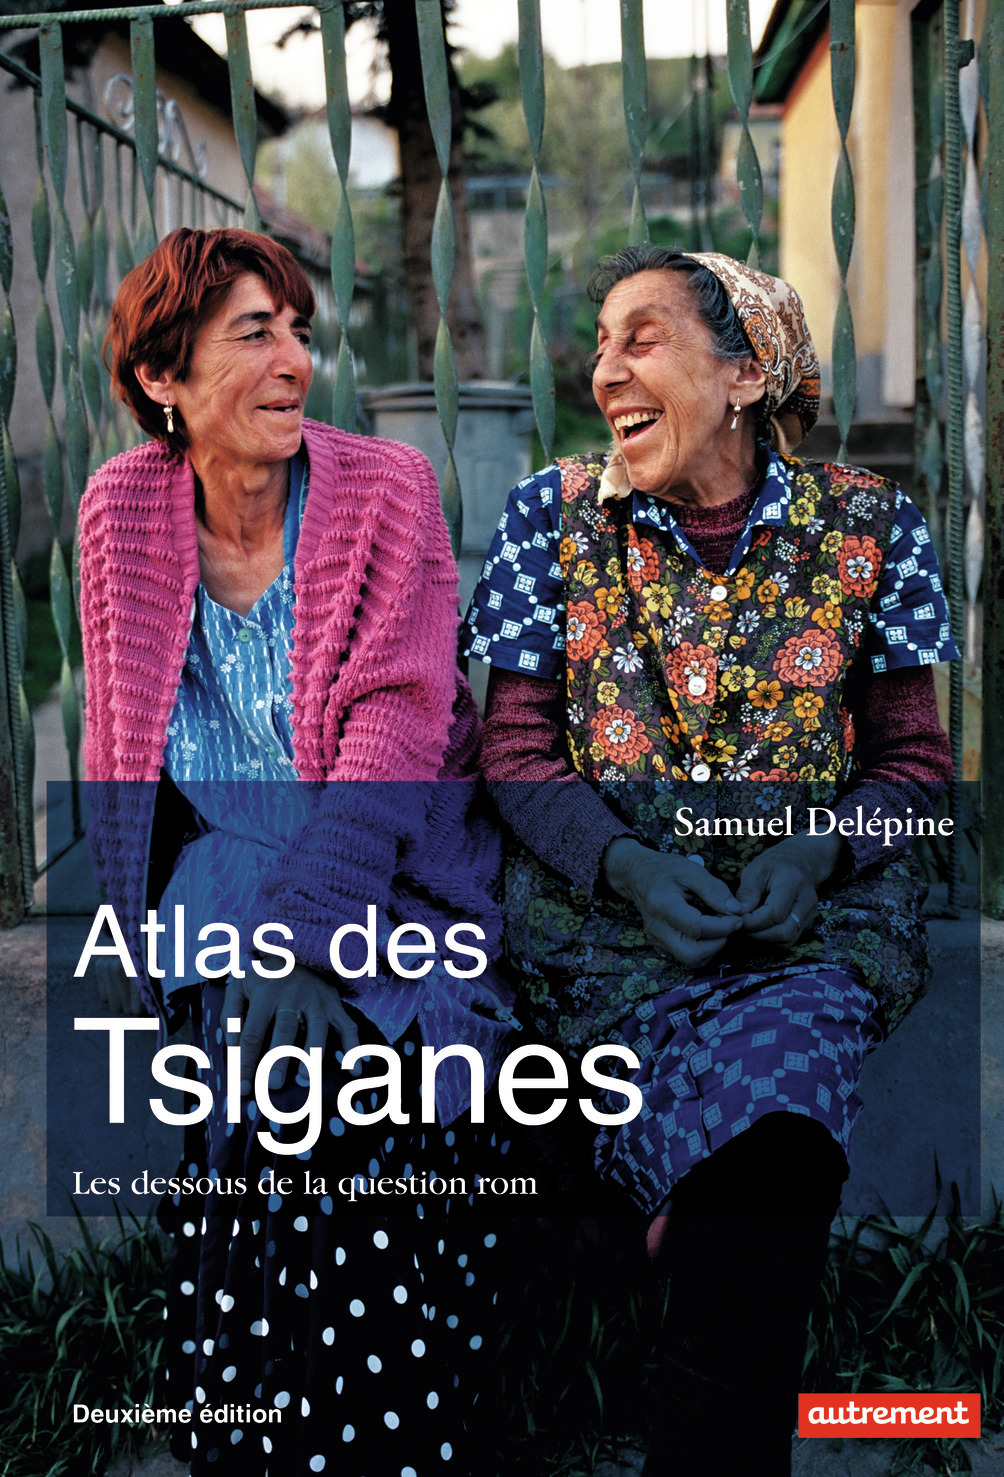 ATLAS DES TSIGANES - LES DESSOUS DE LA QUESTION ROM